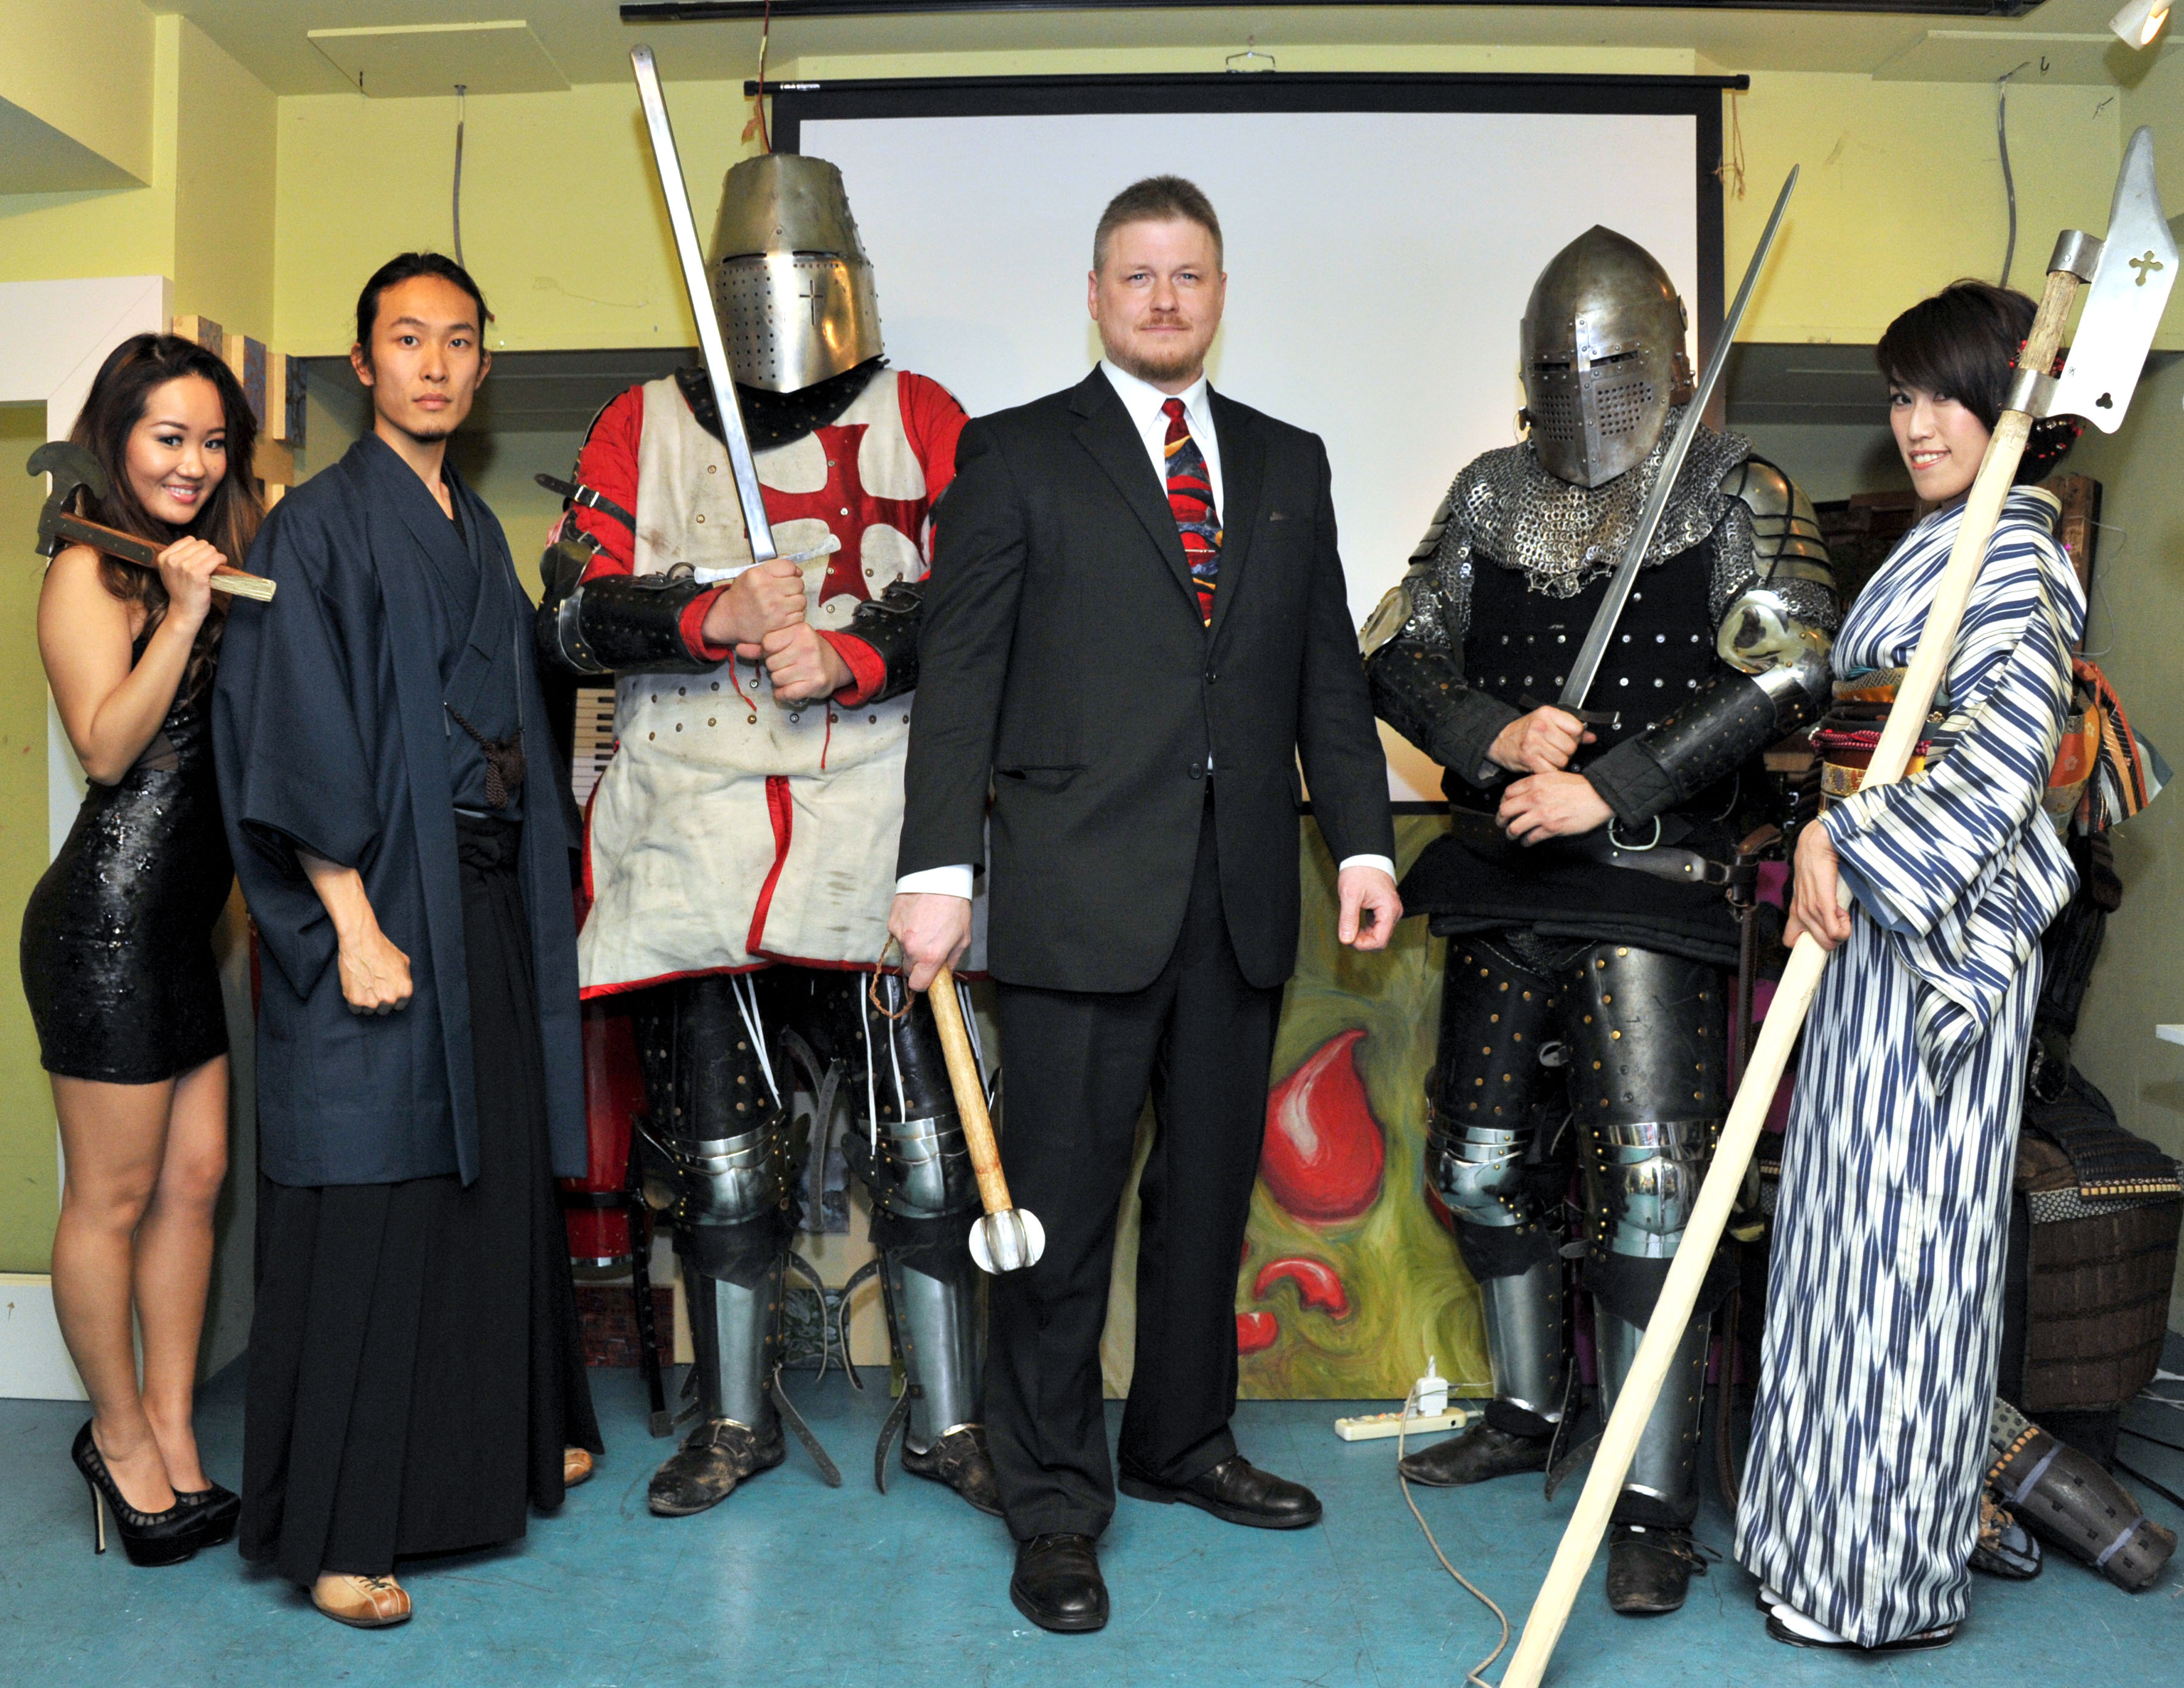 Japan Armored Battle League, Jay Noyes (fourth from left), CEO of JABL, Armors, and assistants opening ceremony, at Roppongi, The Pink Cow on Feb. 9, 2014. Gakugei-bu Hongo reports. YOSHIAKI MIURA PHOTO